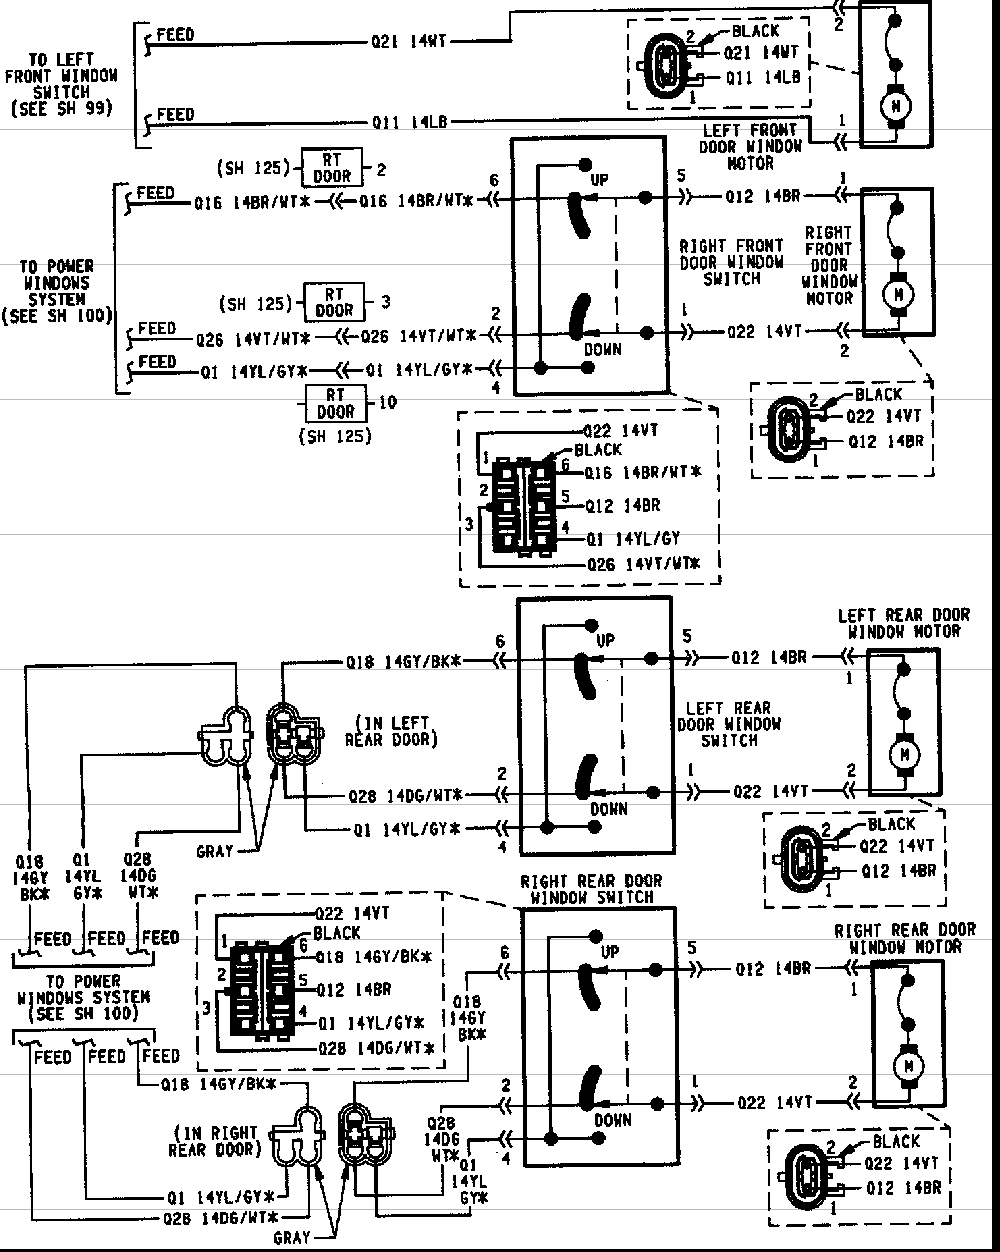 Jeep Grand Cherokee Wiring Diagram - Wiring Diagrams on